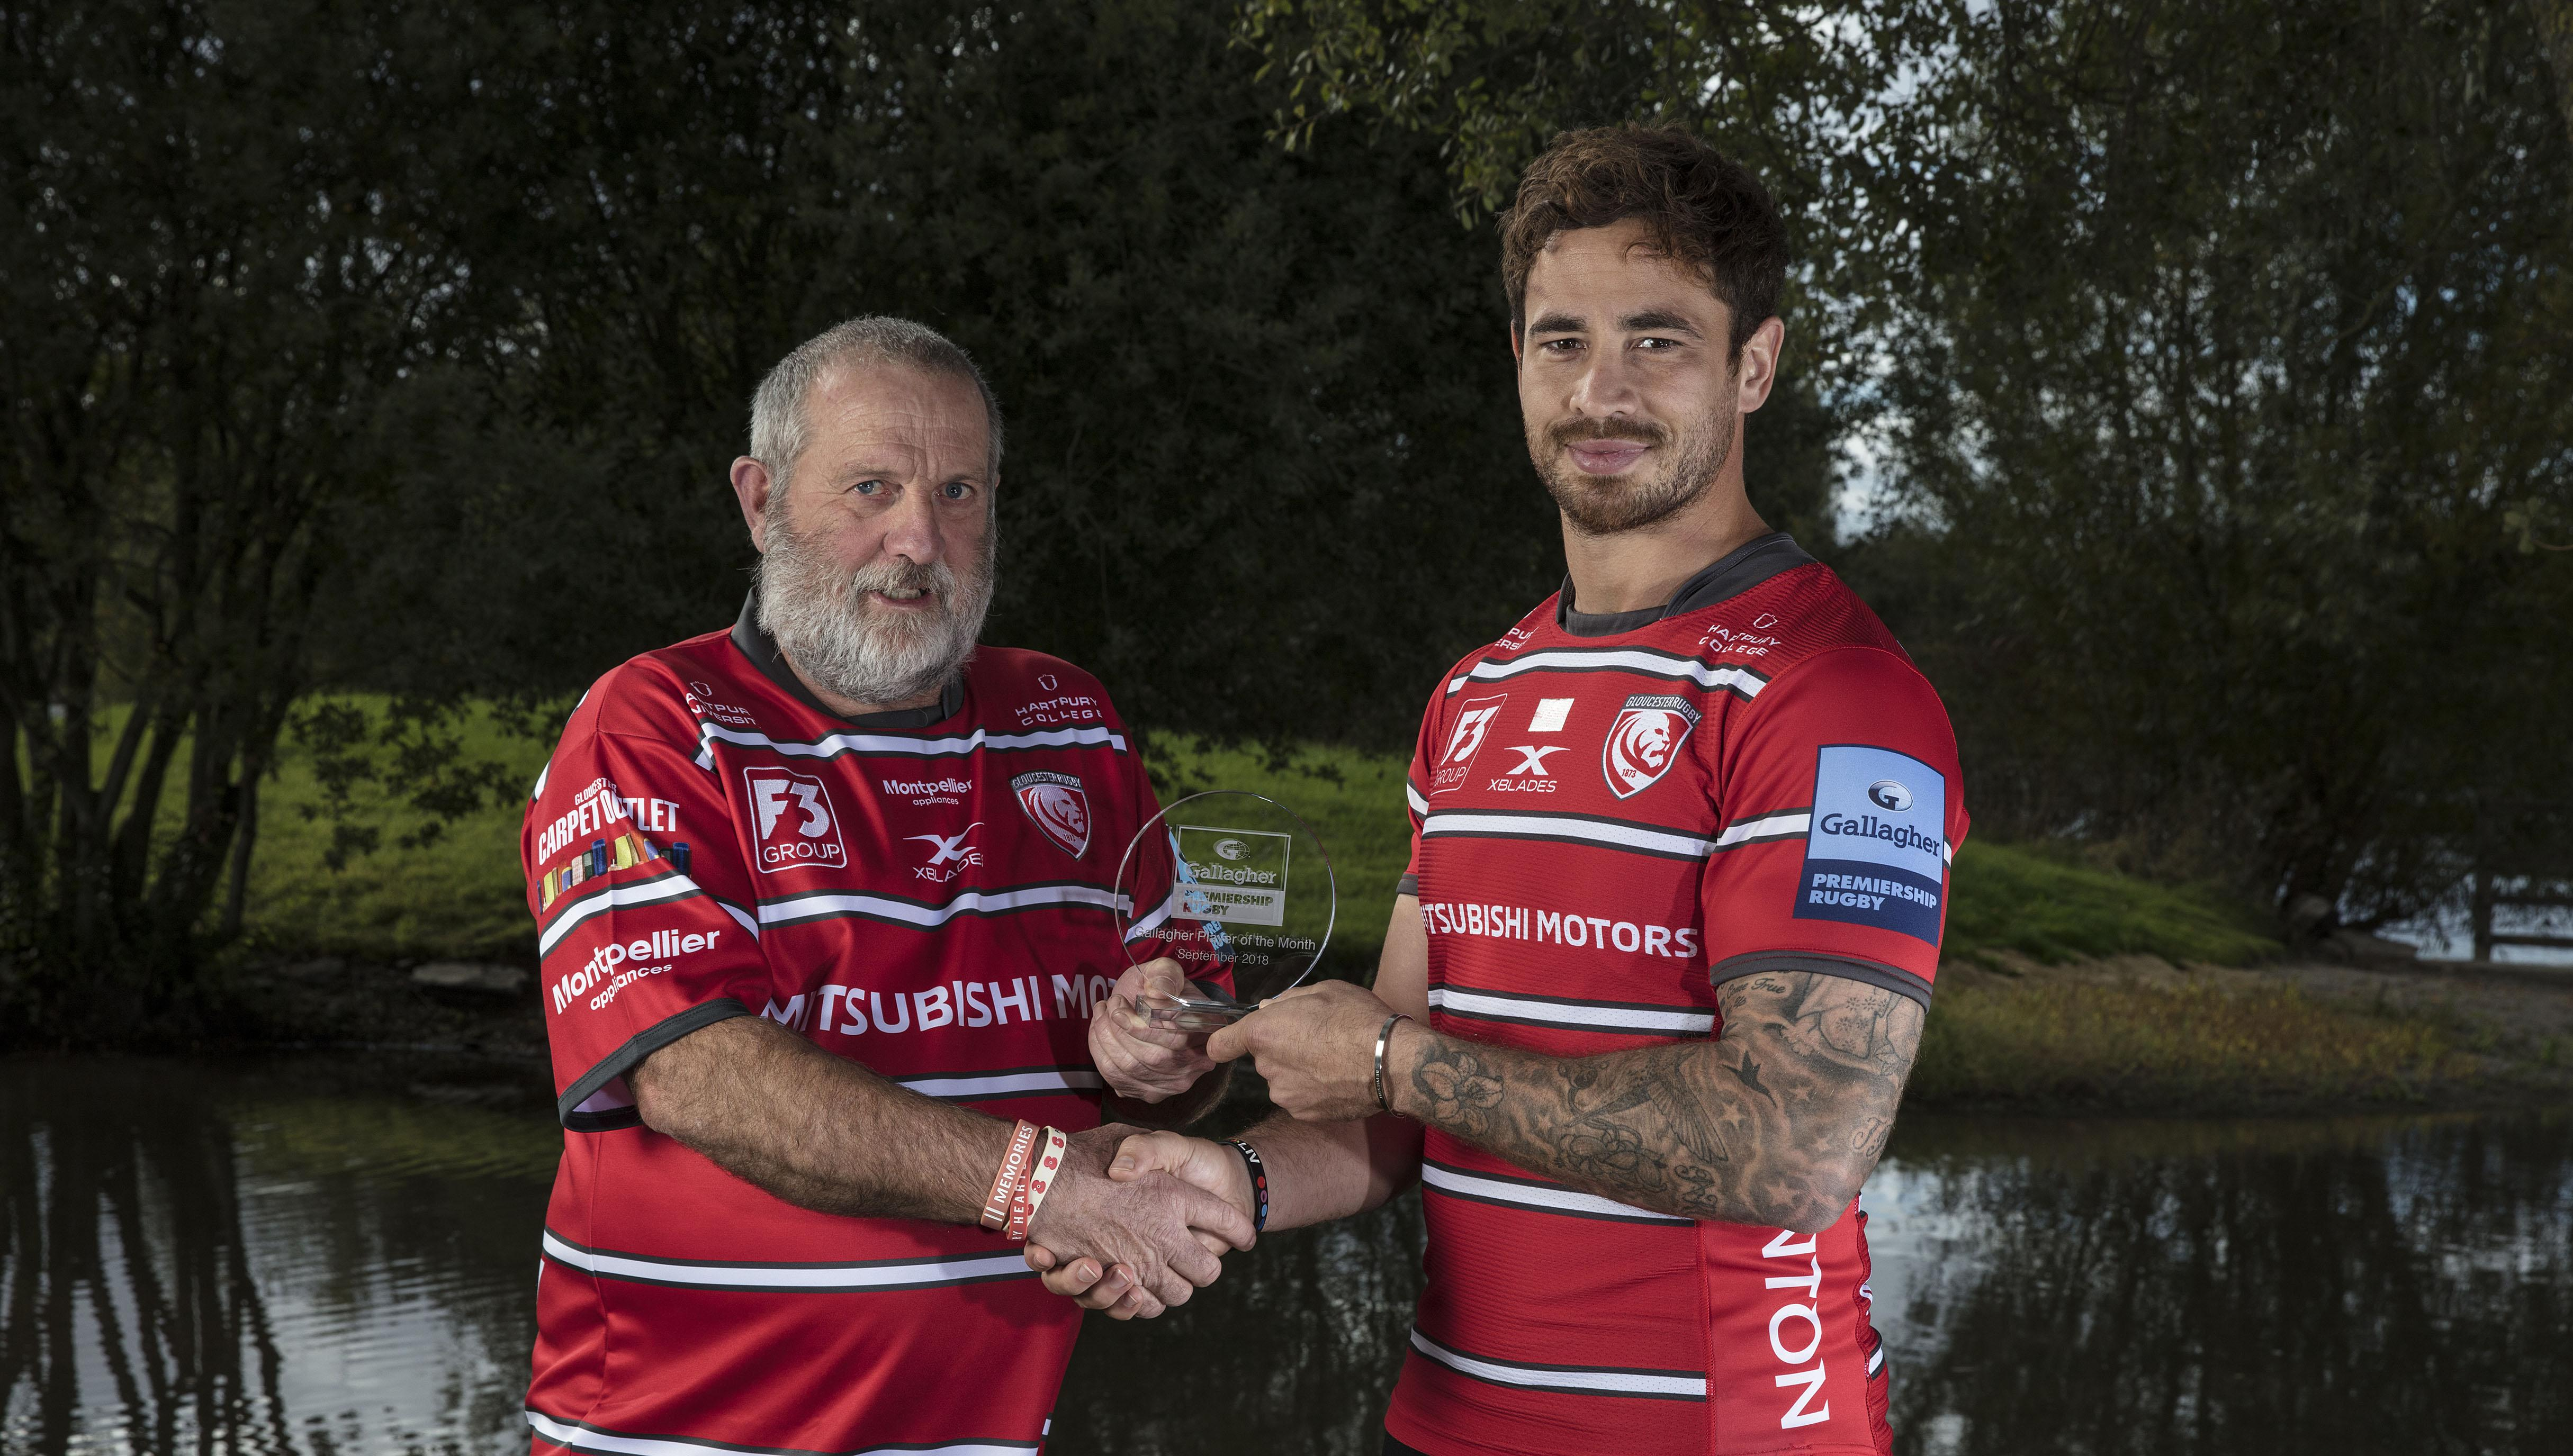 Danny Cipriani collects his award from Gloucester fan Dave Balmer